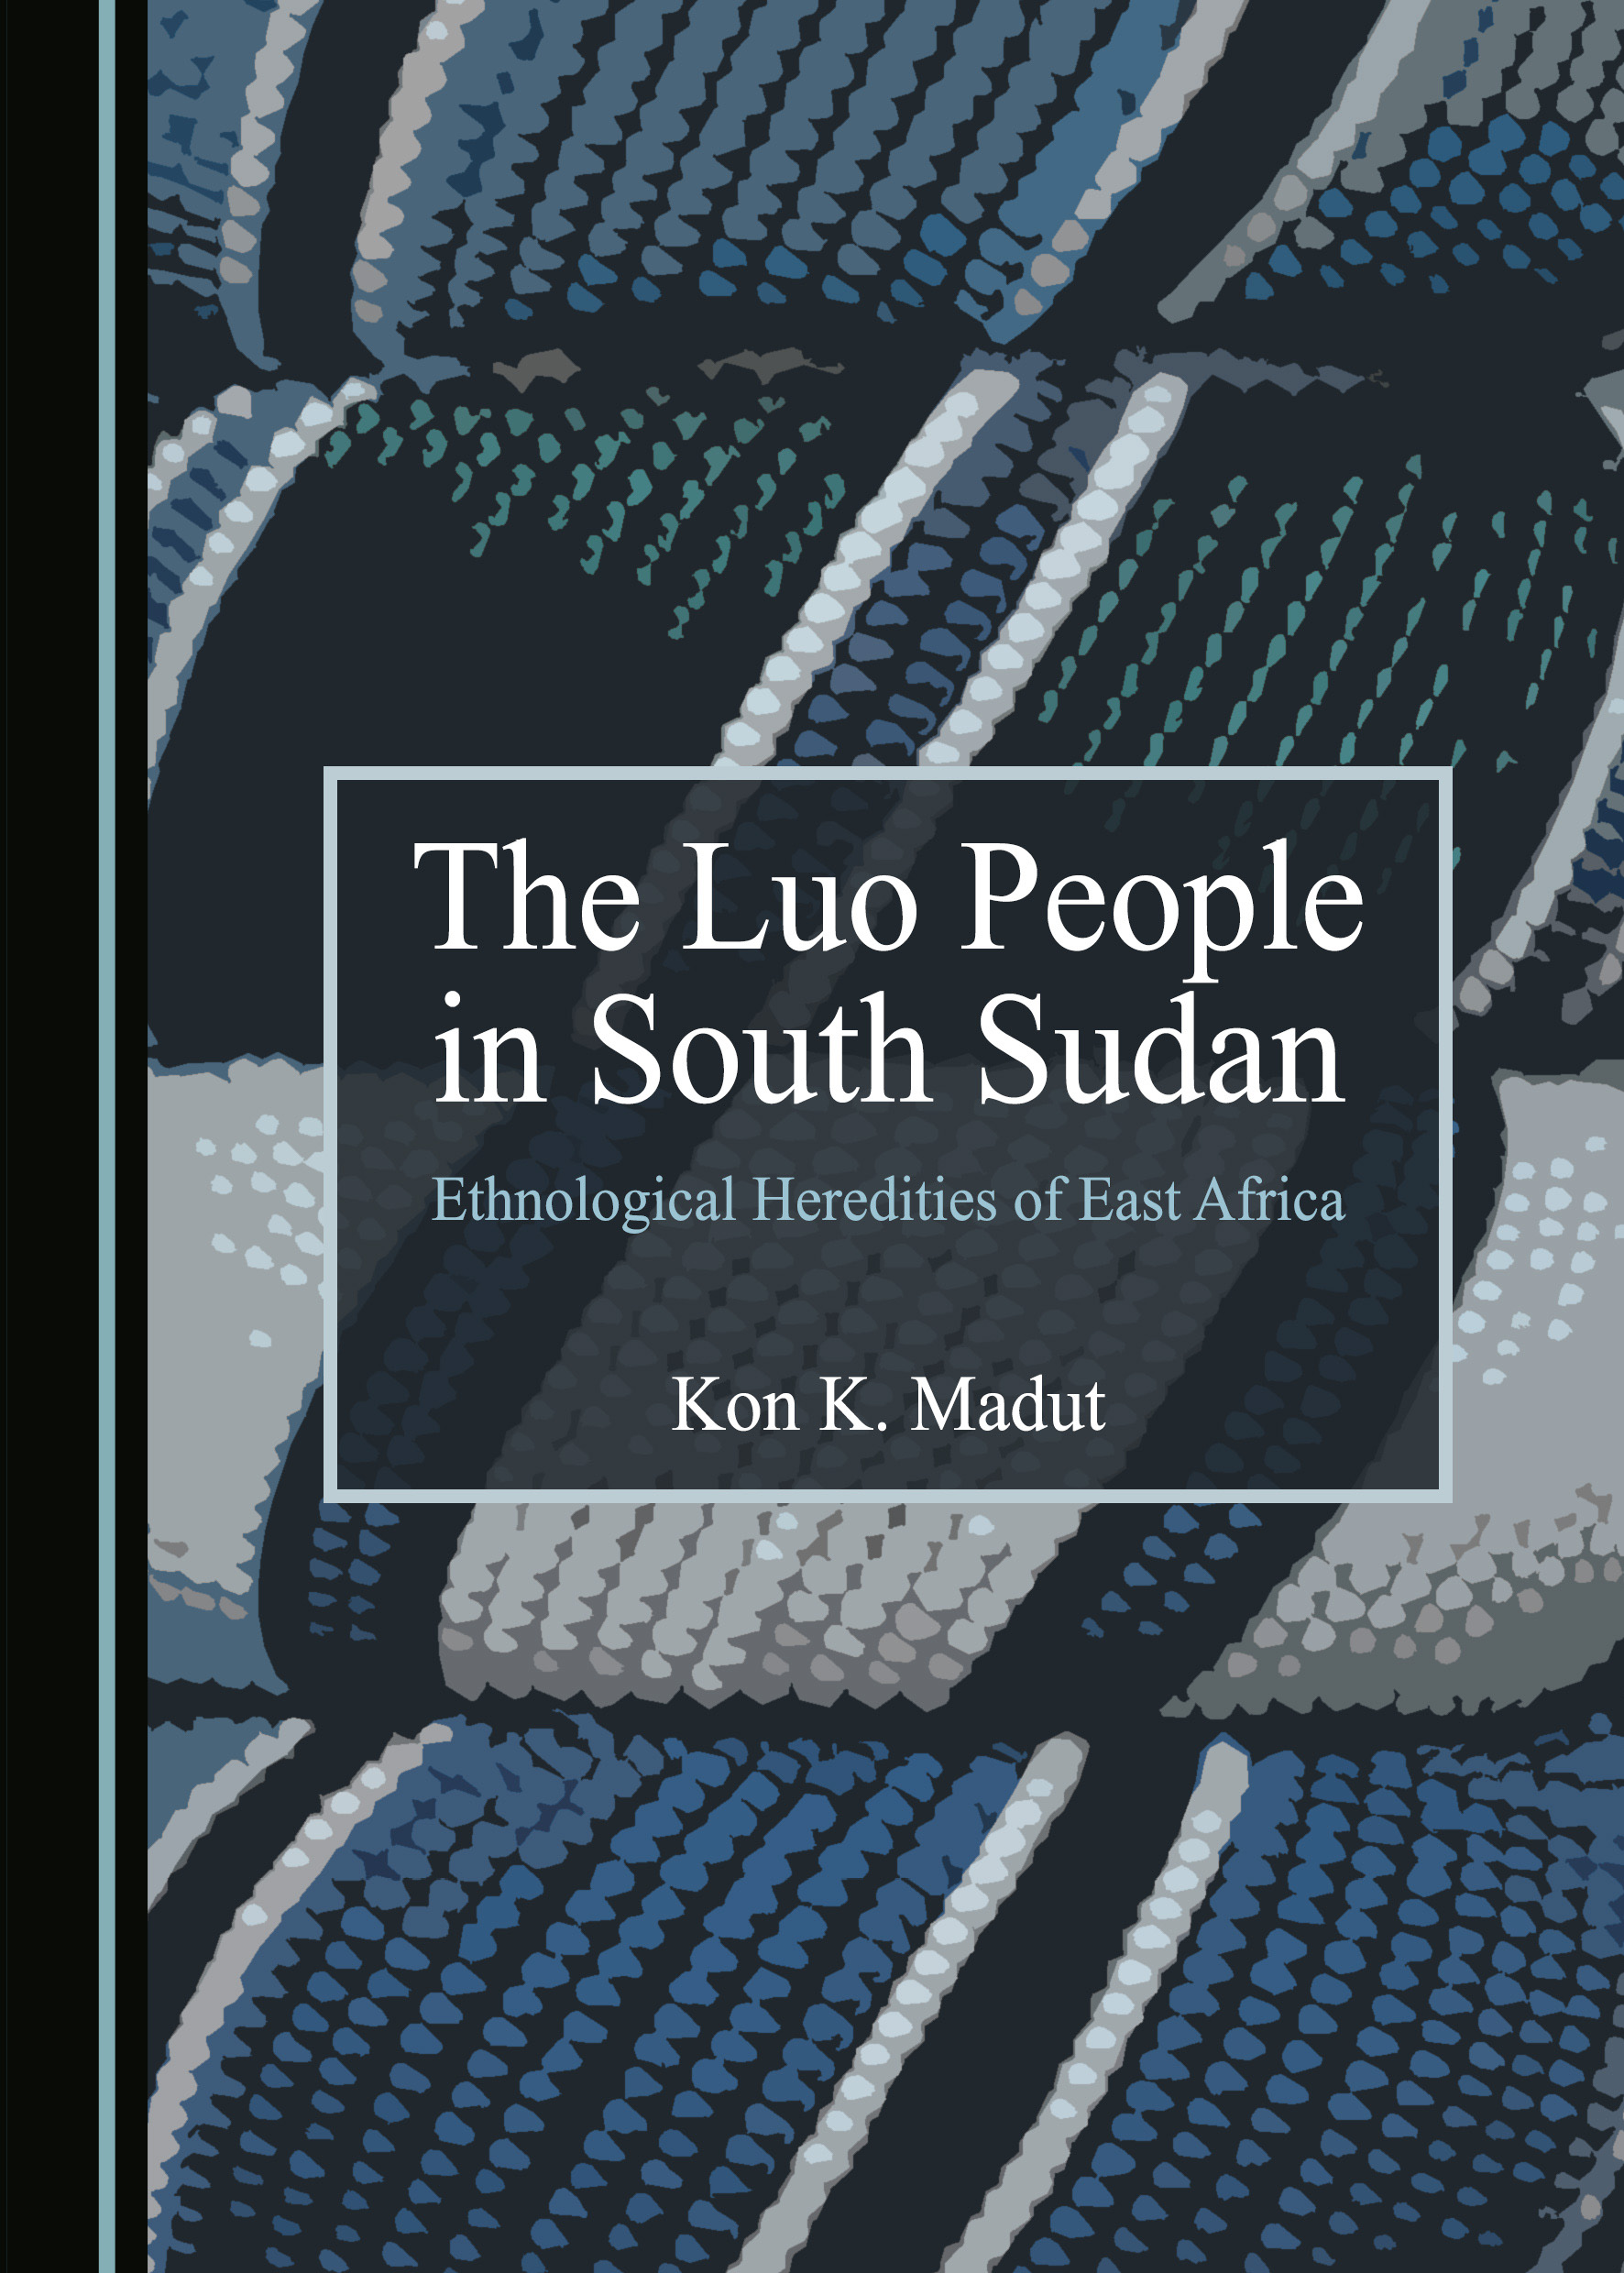 The Luo People in South Sudan: Ethnological Heredities of East Africa